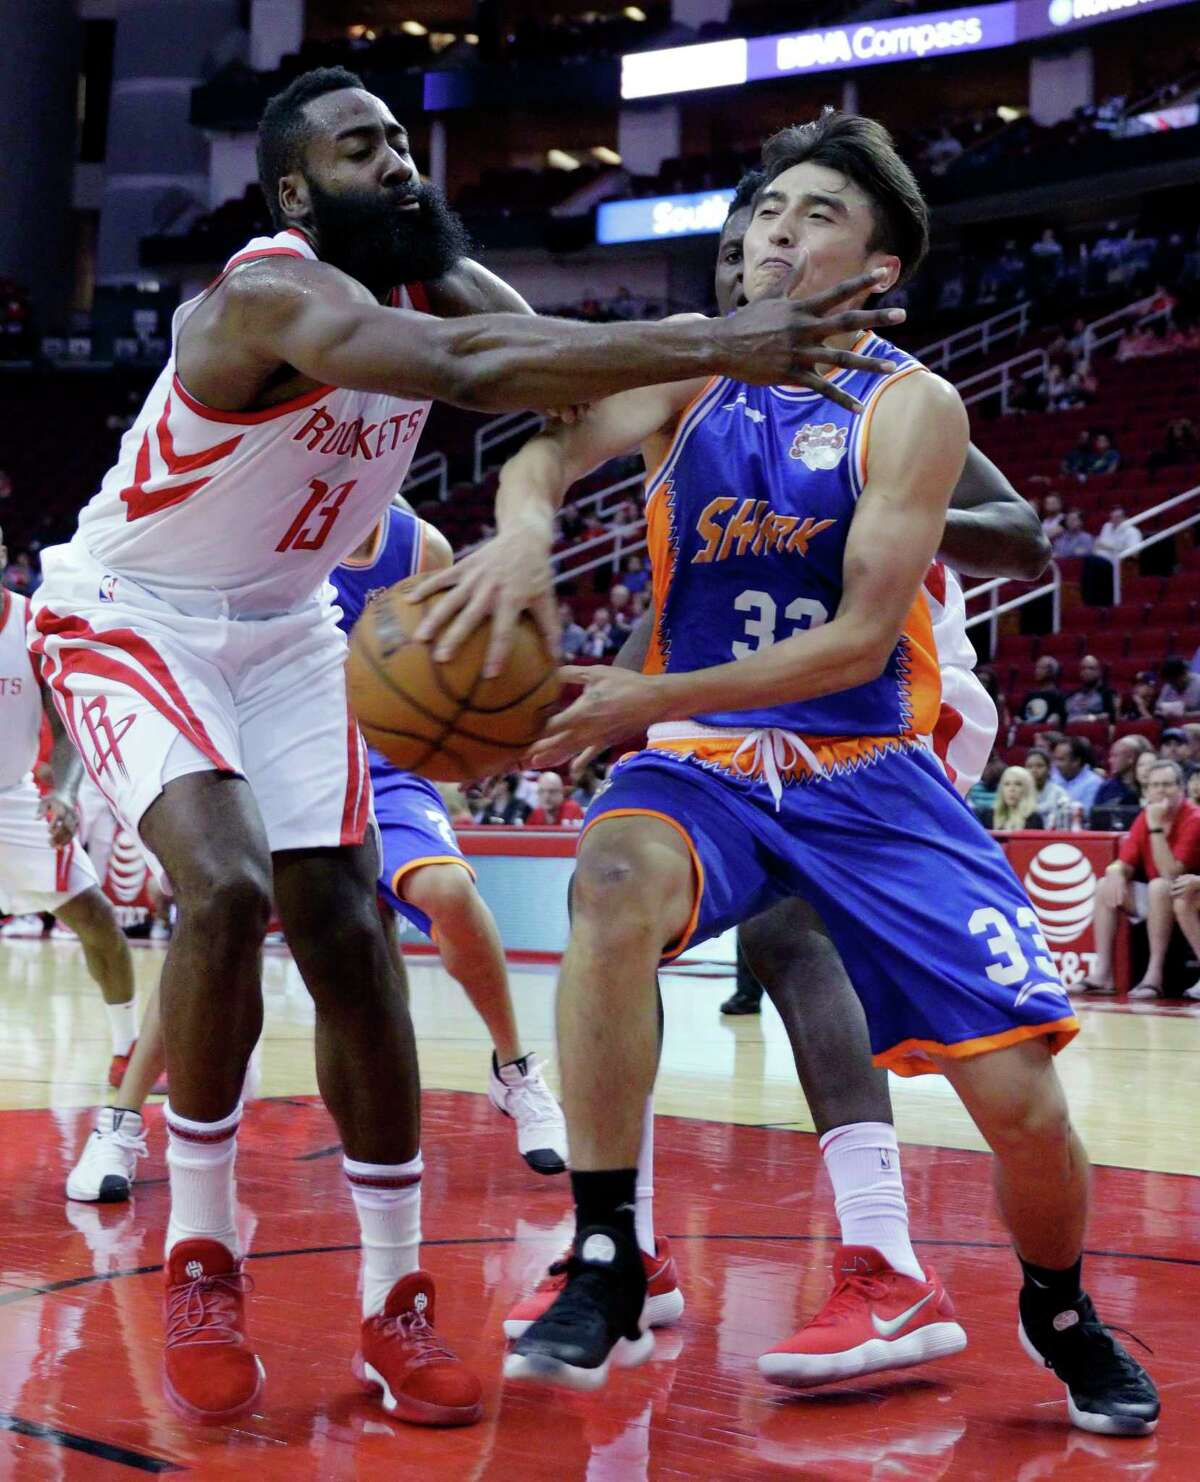 The Rockets' James Harden (13) defends a pass from Shanghai Sharks guard Luo Hanchen (33) in the first half Thursday. Harden was 4-for-11 for nine points